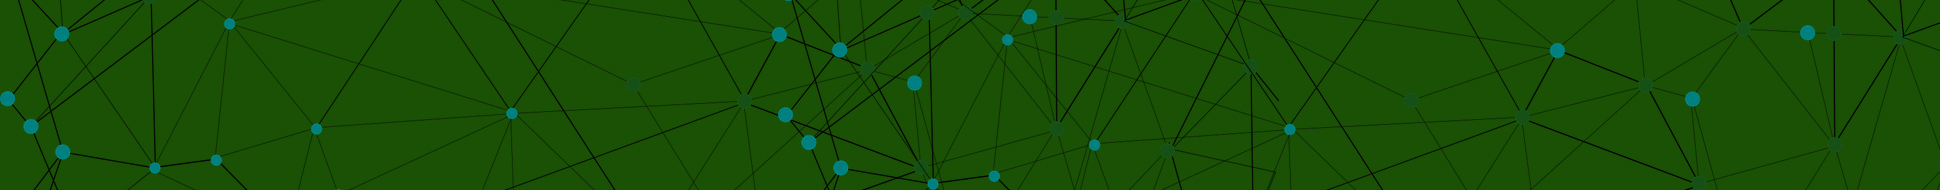 image of networked nodes with green background